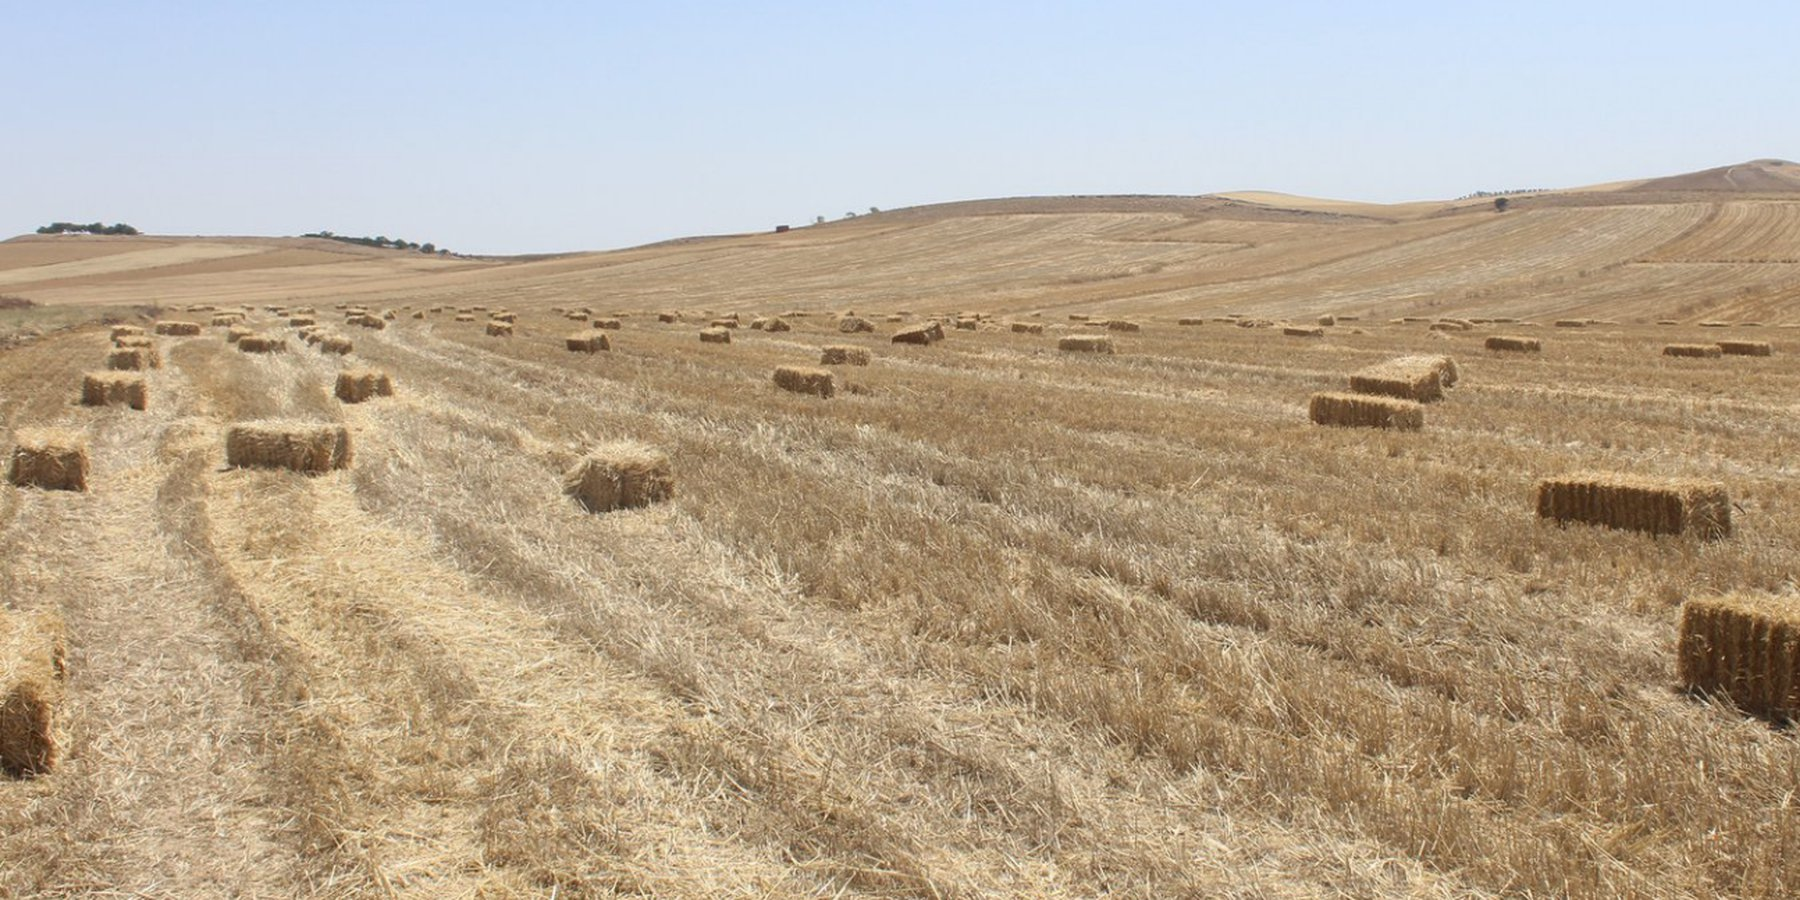 A farm field with a mulch soil cover. The bales of straw are a result of the harvesting by a combine. The stubble is used for limited grazing, Tunisia